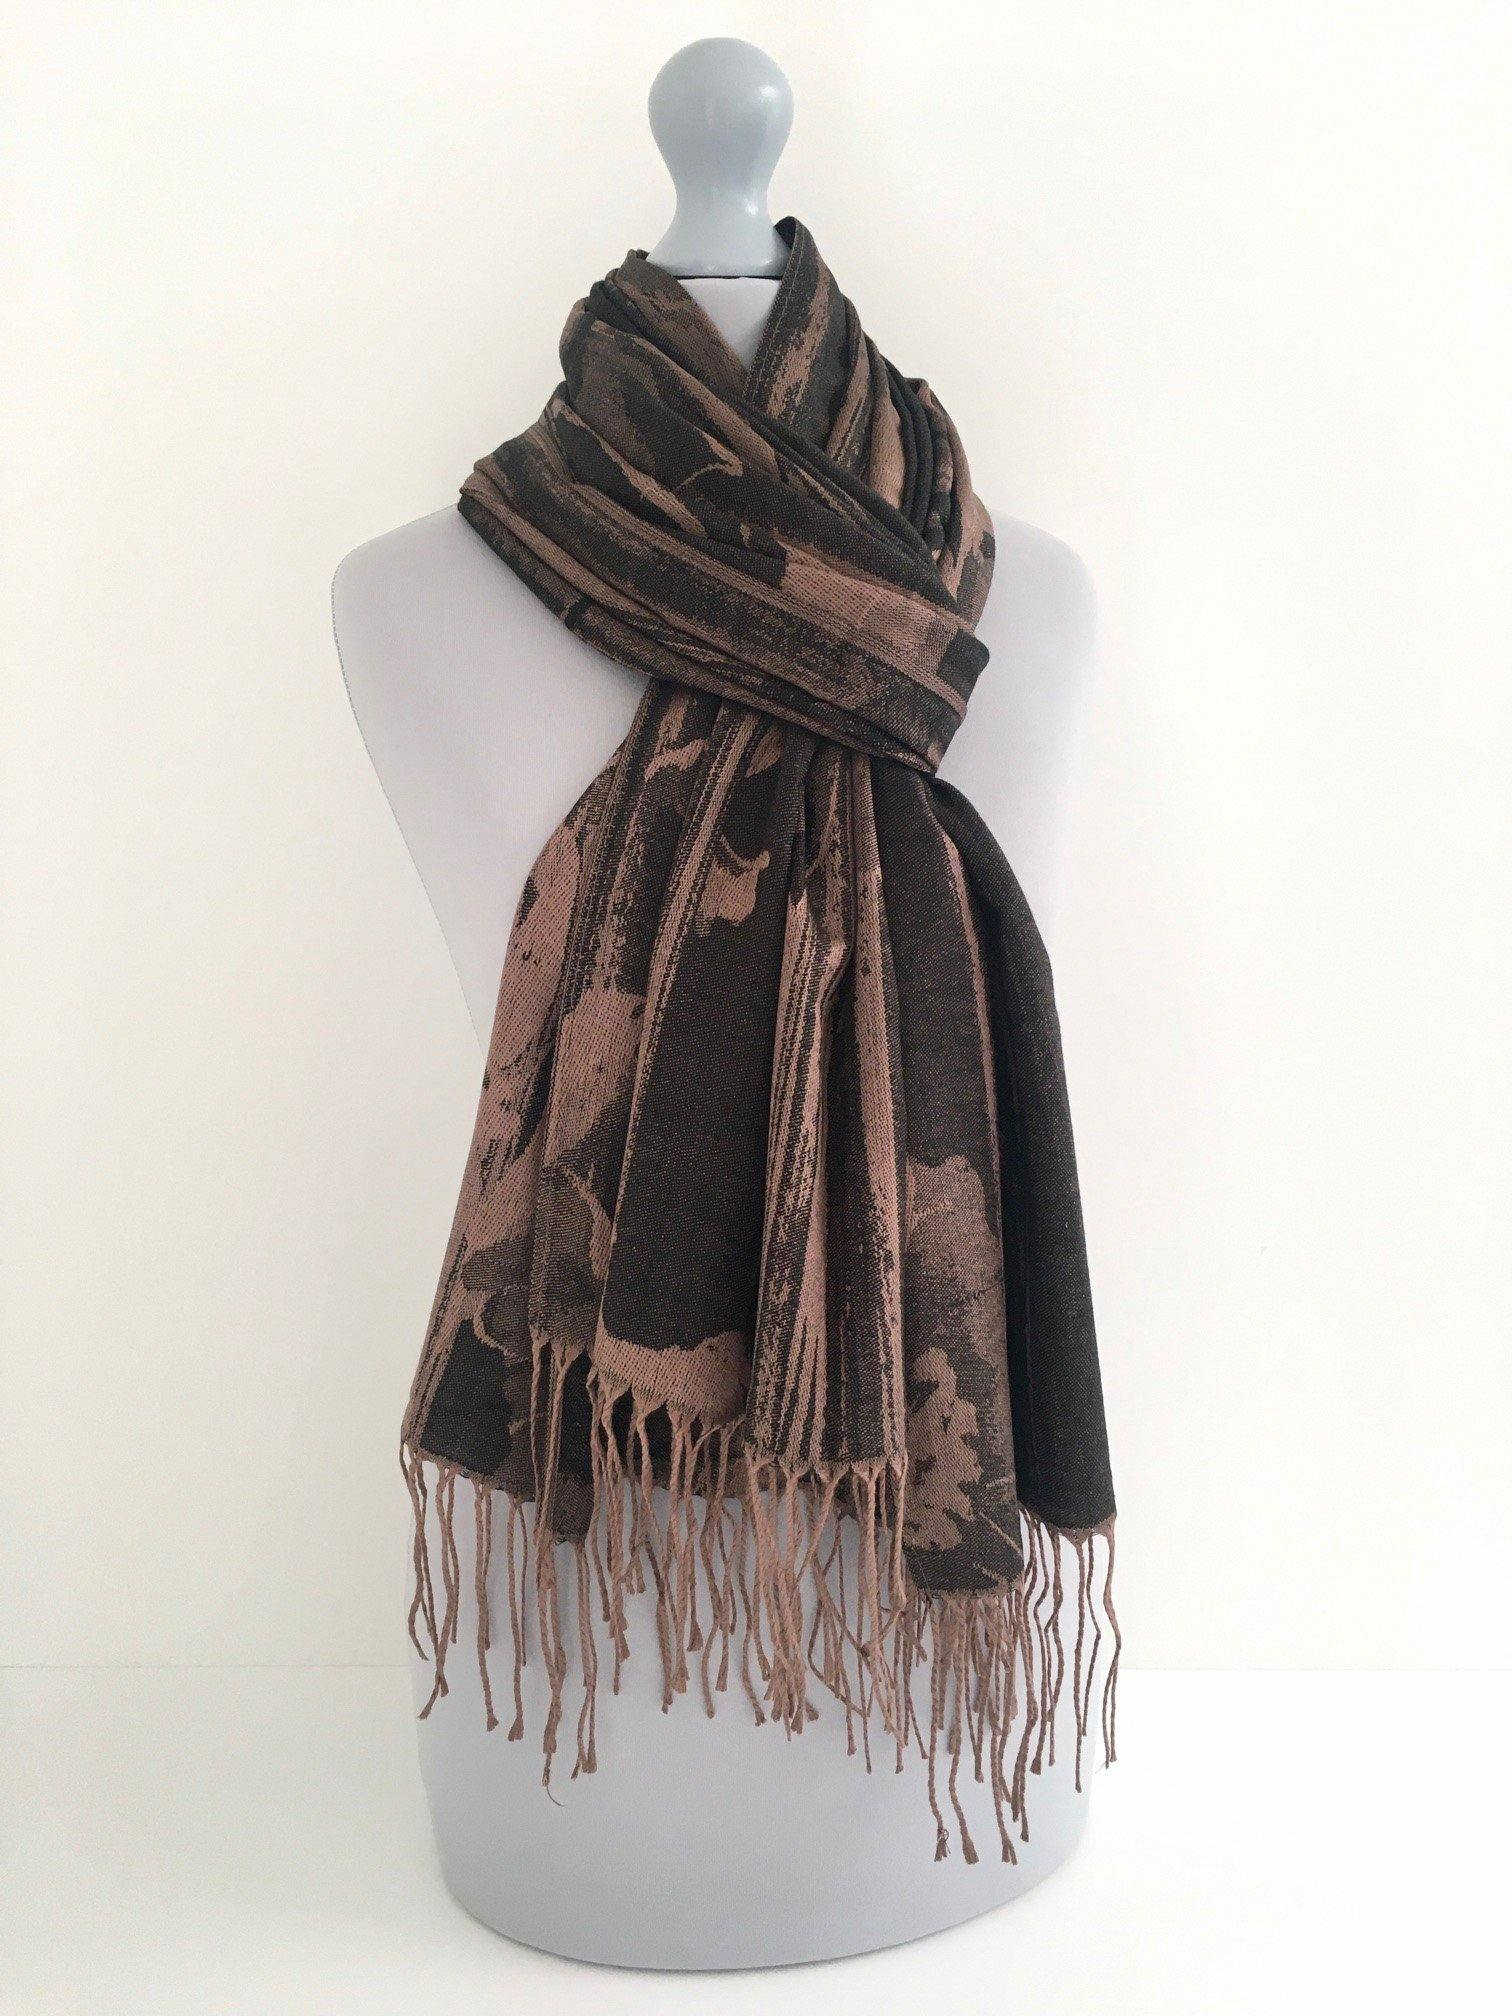 A-SHU BLACK BRONZE REVERSIBLE PASHMINA SHAWL SCARF IN ABSTRACT FLORAL PRINT - A-SHU.CO.UK